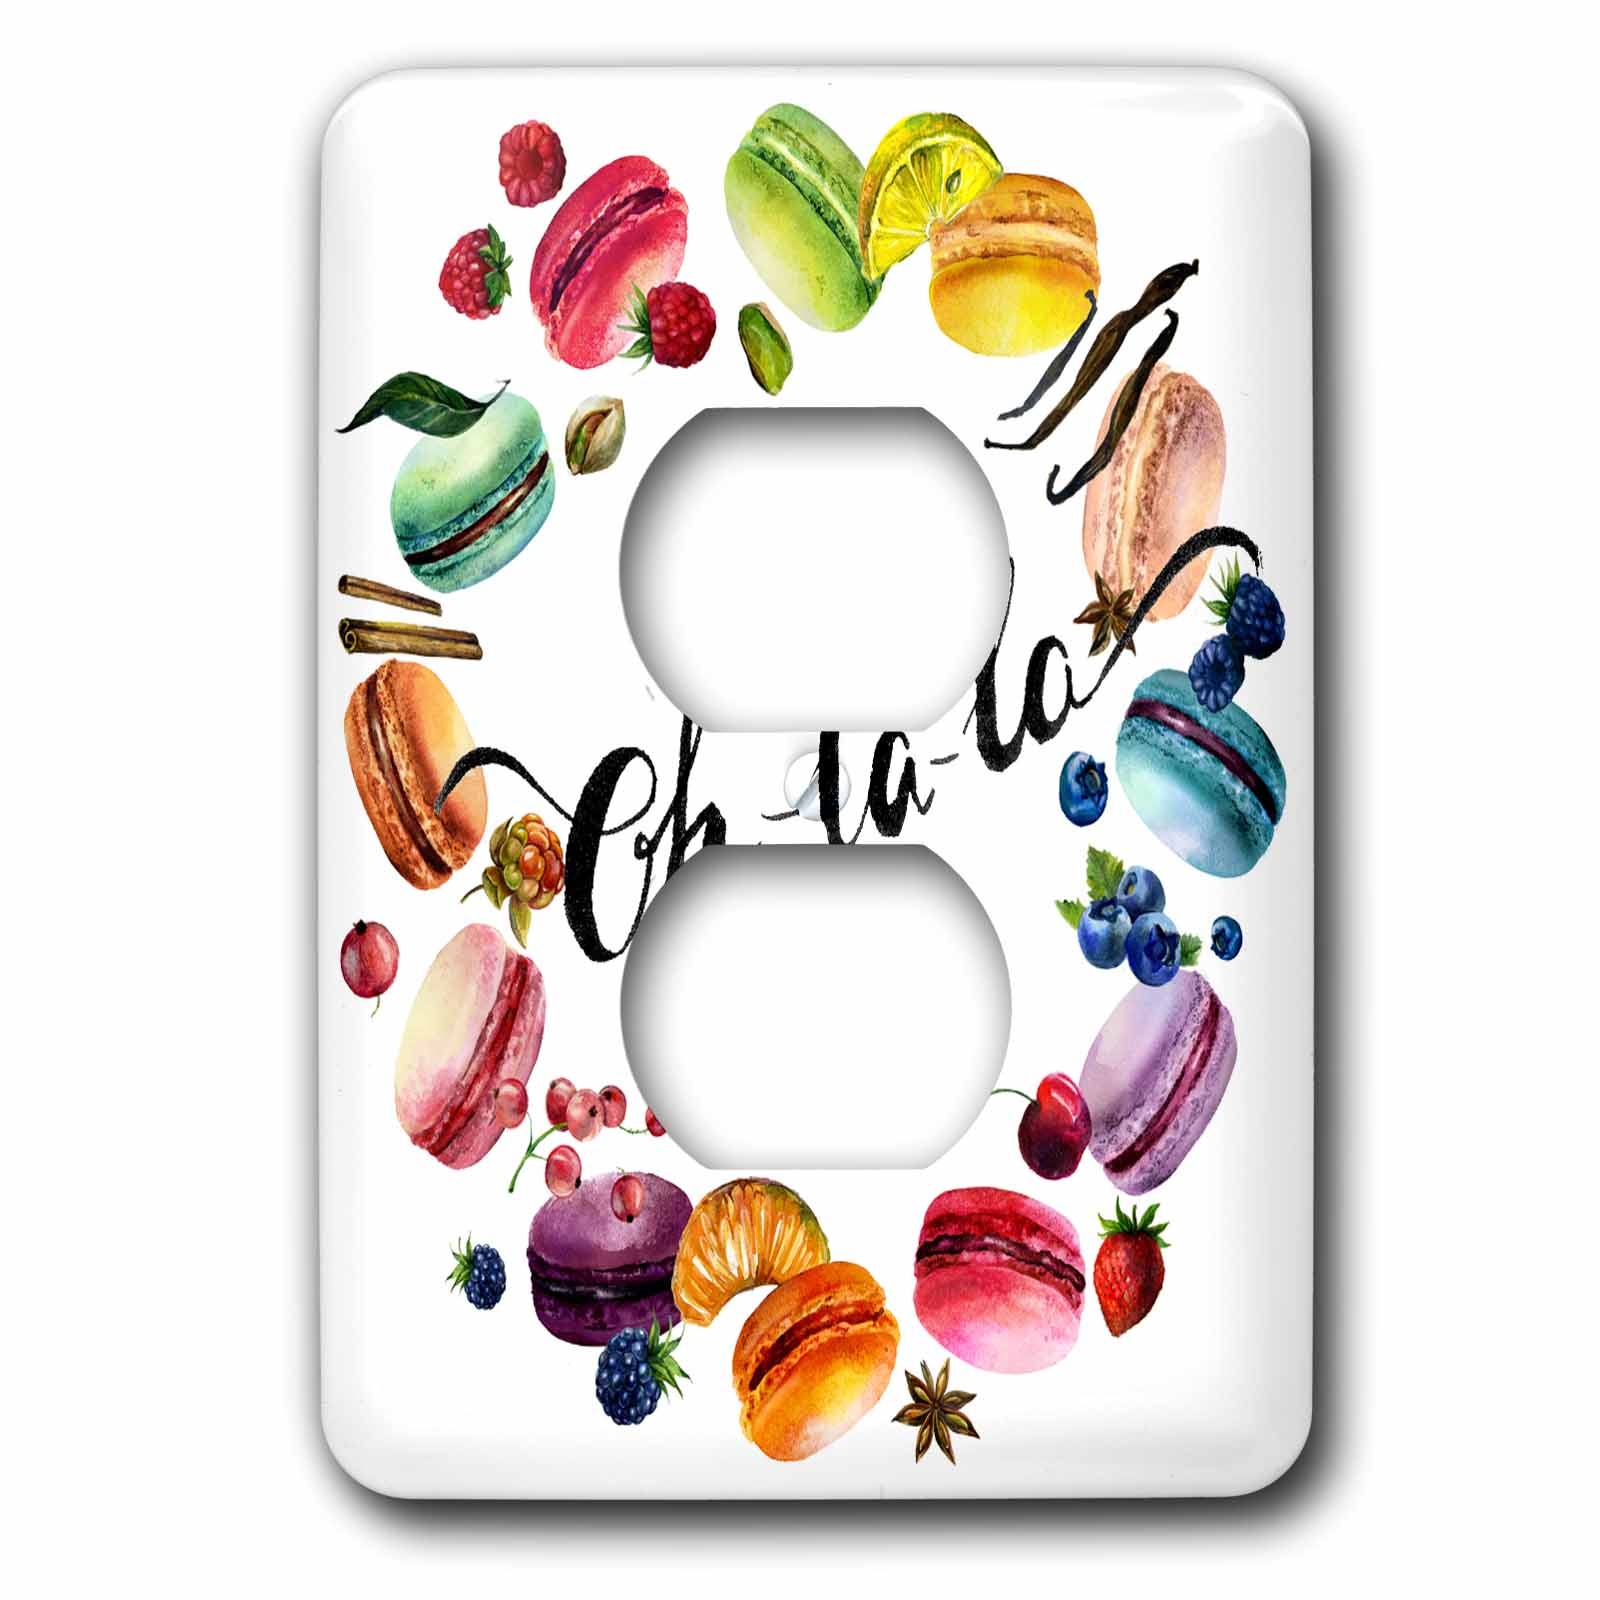 3dRose Cute Watercolor French Macaroon Cookies Wreath With Oh La La - 2 Plug Outlet Cover